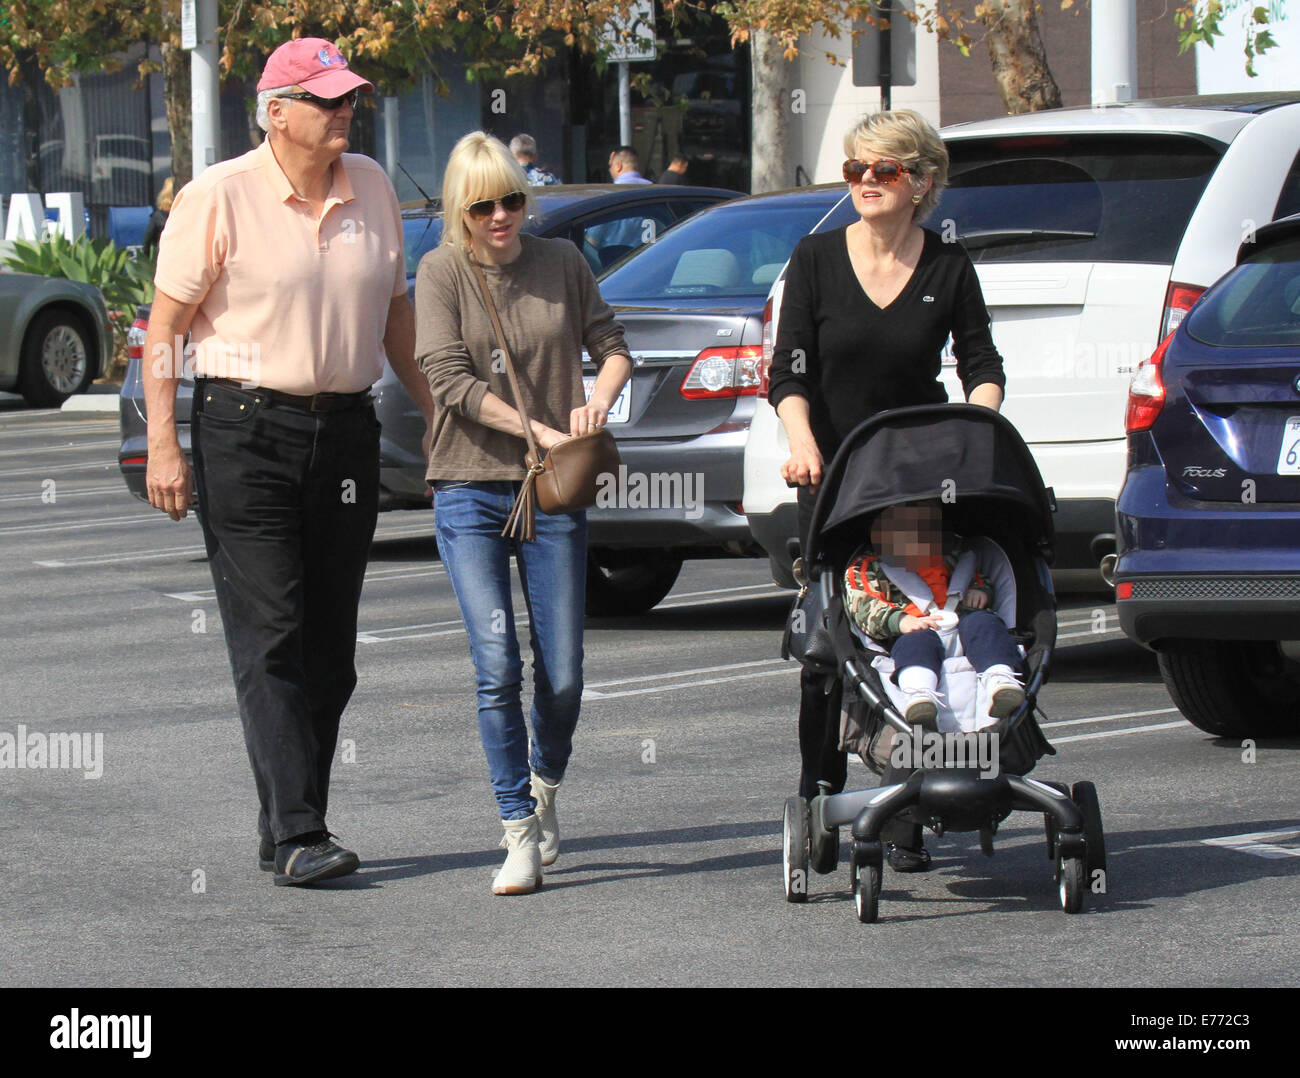 west hollywood single parents Visit west hollywood health center for family planning services, including std testing and abortions make an appointment with planned parenthood.